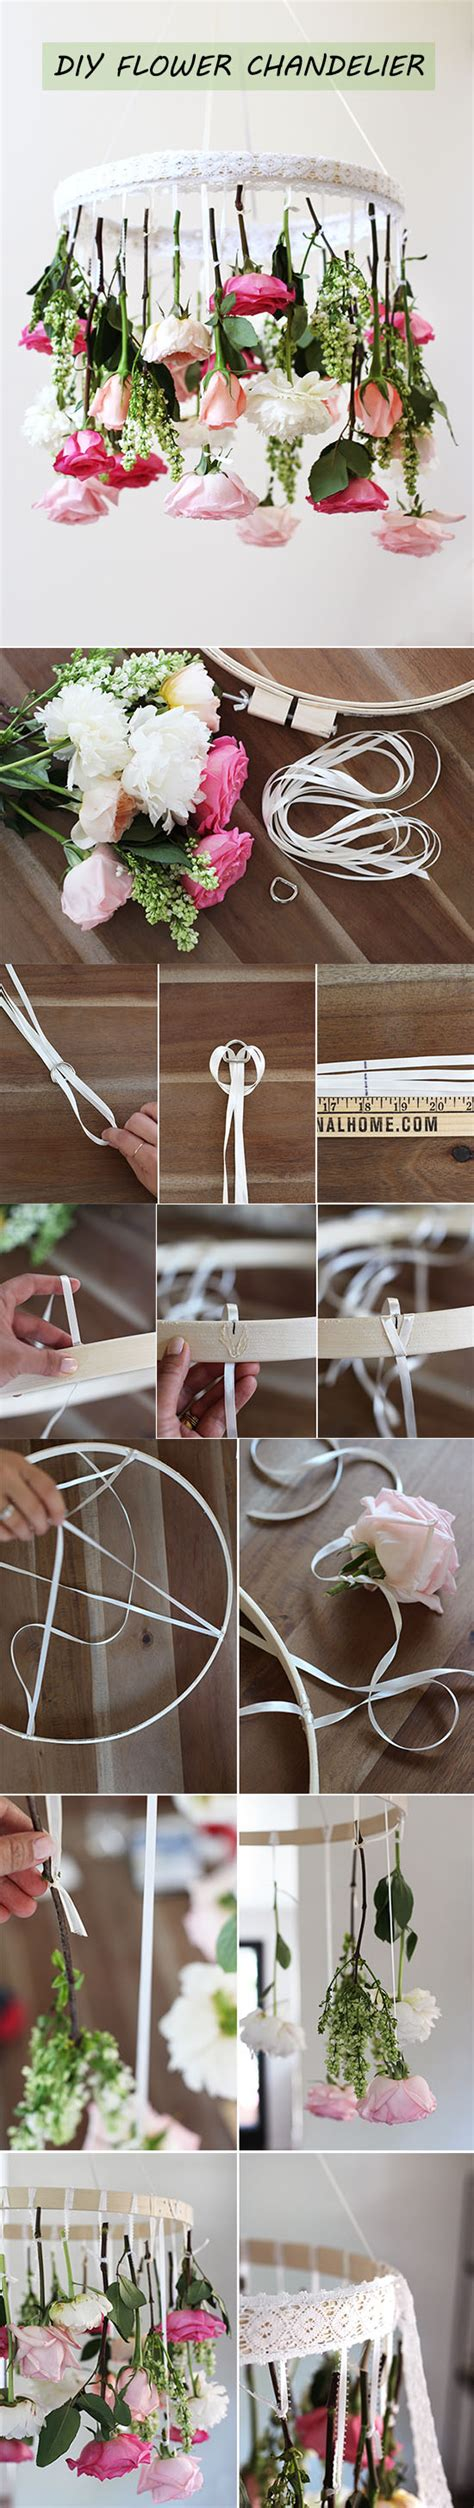 easy diy chandelier 12 creative diy wedding ideas with tutorials to save you